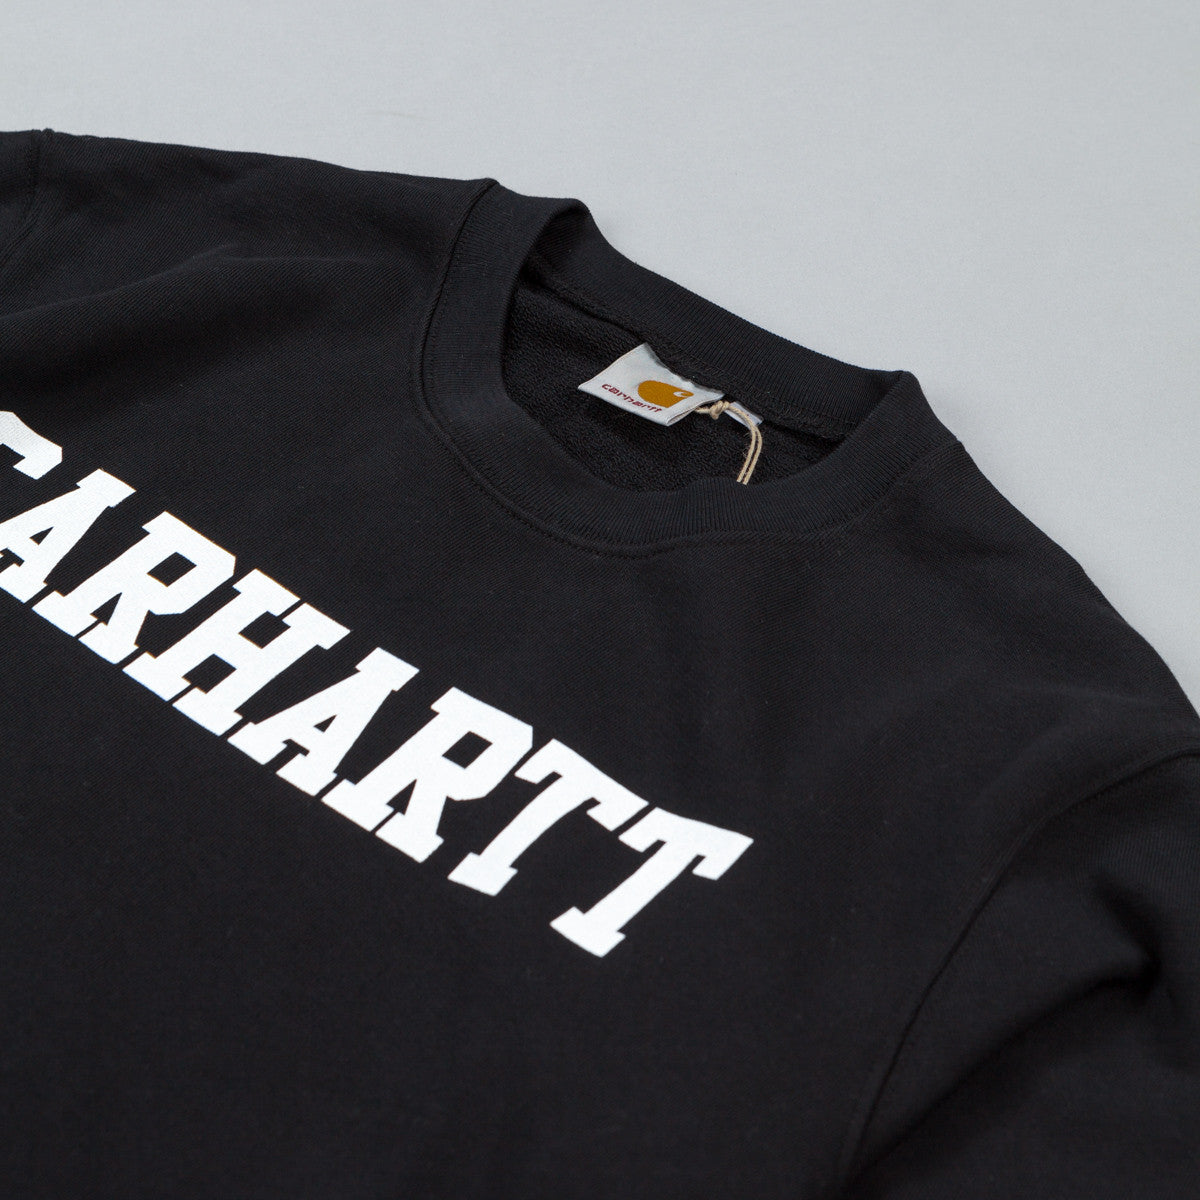 Carhartt College Crew Neck Sweatshirt - Black